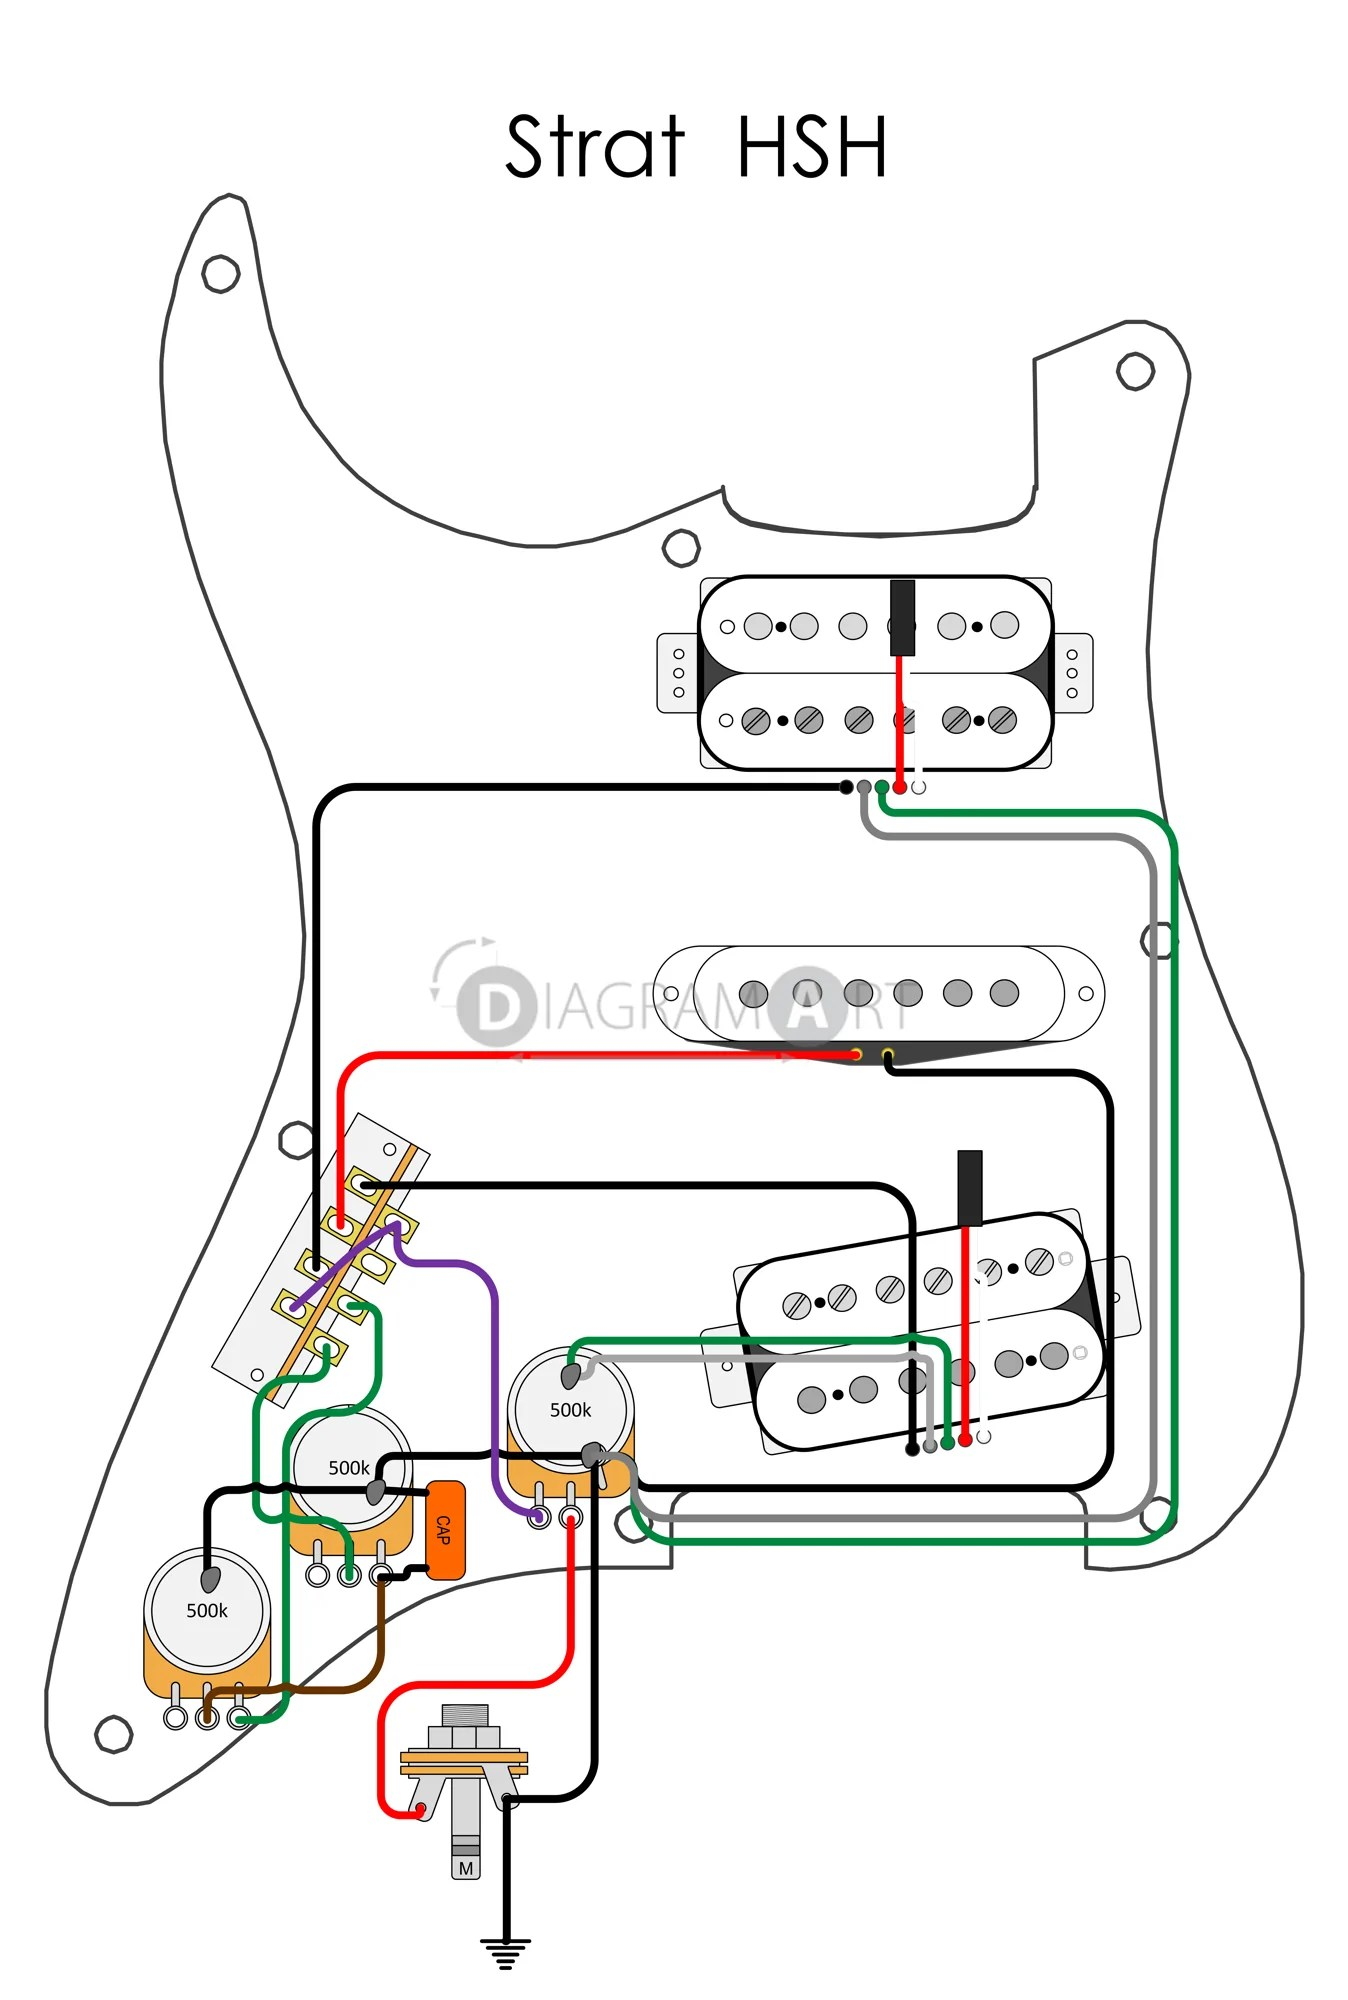 free download guitar wiring diagrams diagram jem simple wiring schema car air horn wiring diagram guitar wiring diagram hsh [ 1348 x 2000 Pixel ]